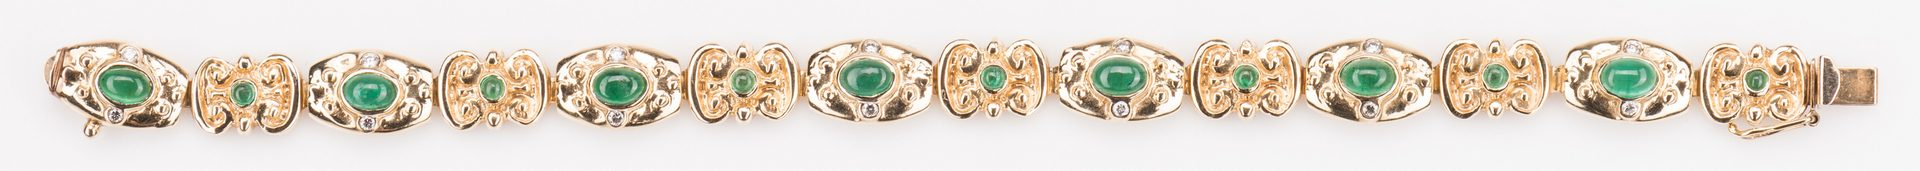 Lot 252: 14K Emerald Bracelet, 23. 8 grams